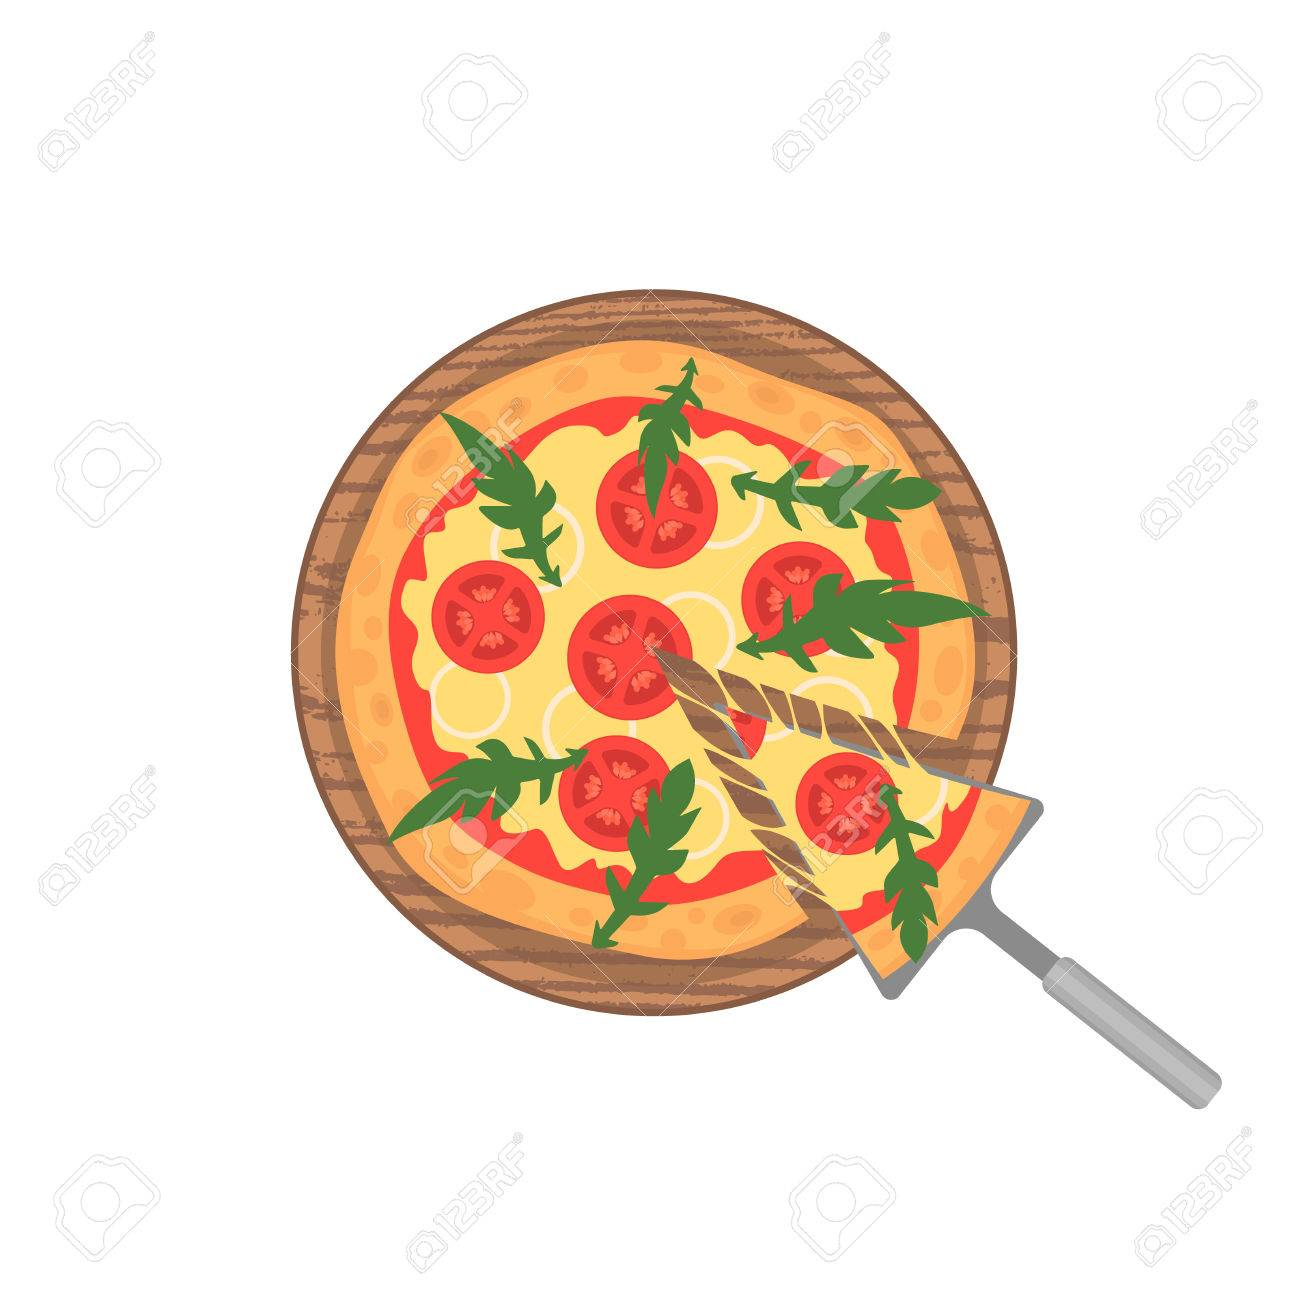 Margherita Pizza On Wooden Board White Slice With Melting Cheese Illustration Cartoon